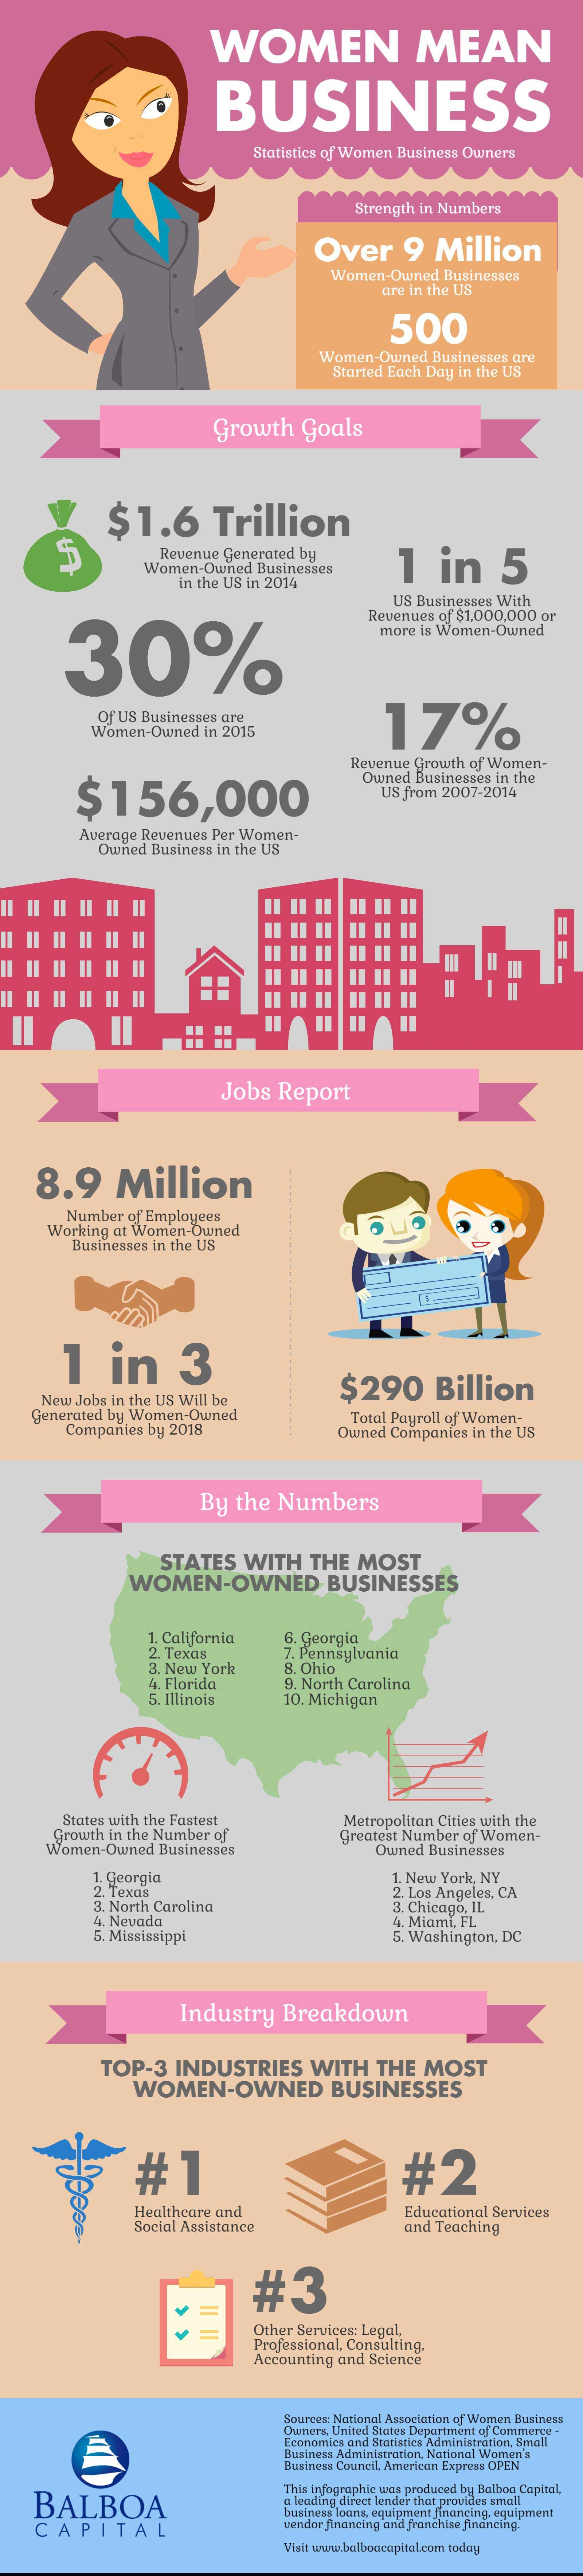 women mean business - infographic